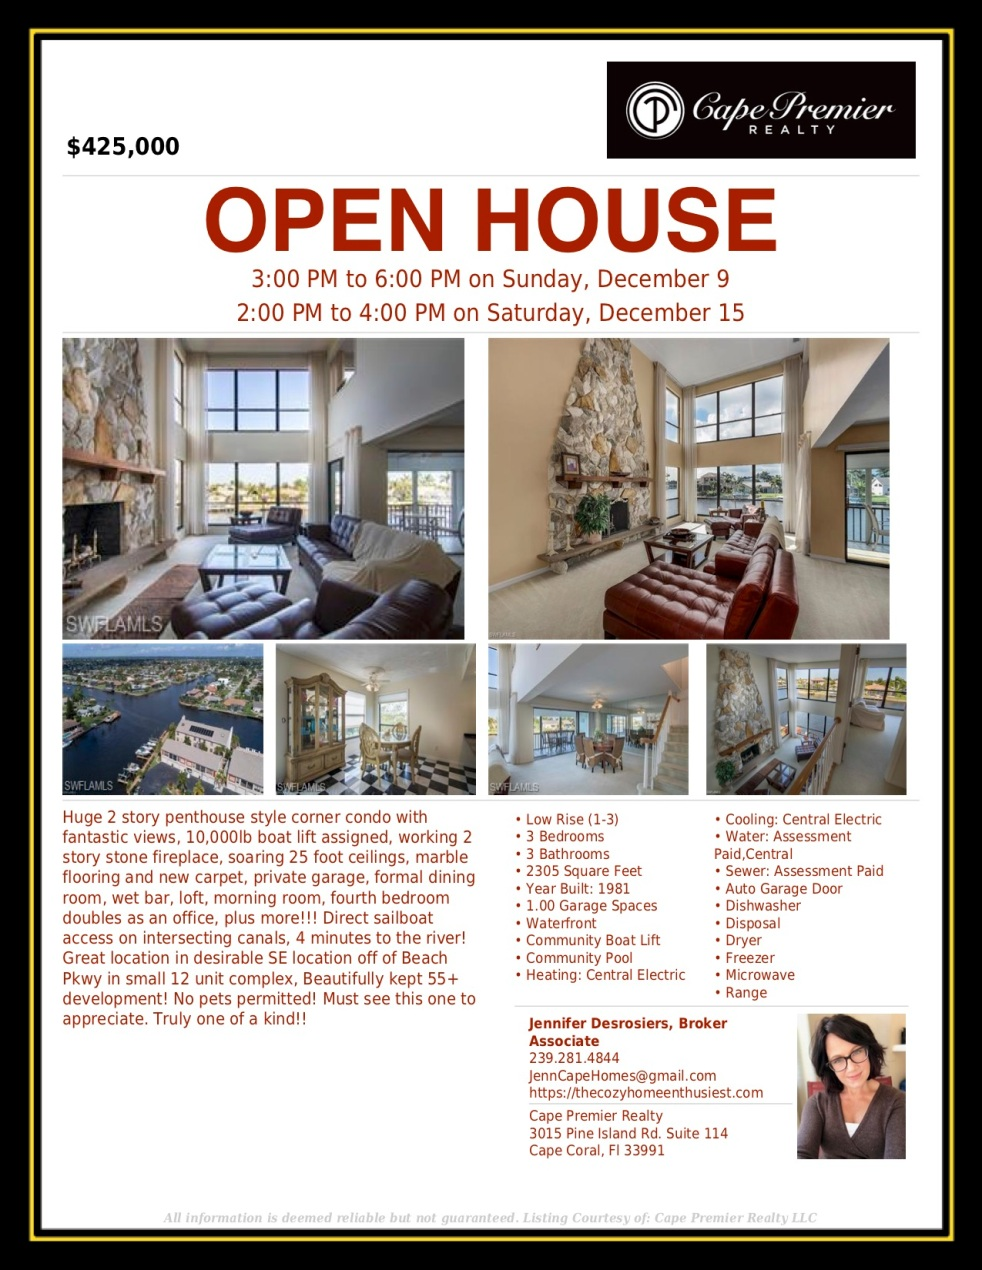 Open House Flyer - 40th Ter.